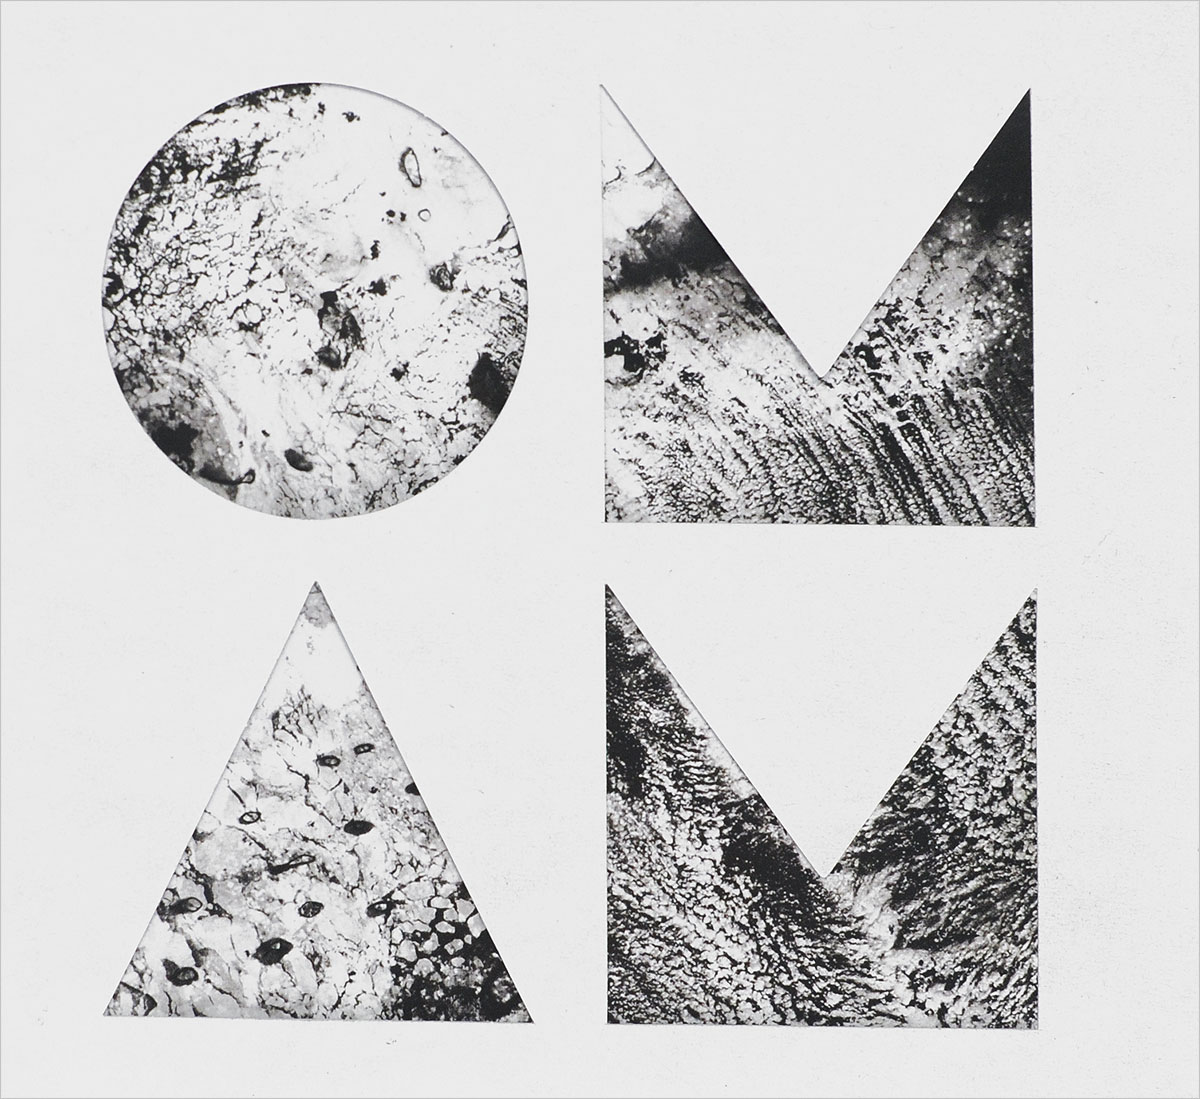 Of Monsters And Men Of Monsters And Men. Beneath The Skin of monsters and men of monsters and men beneath the skin 2 lp